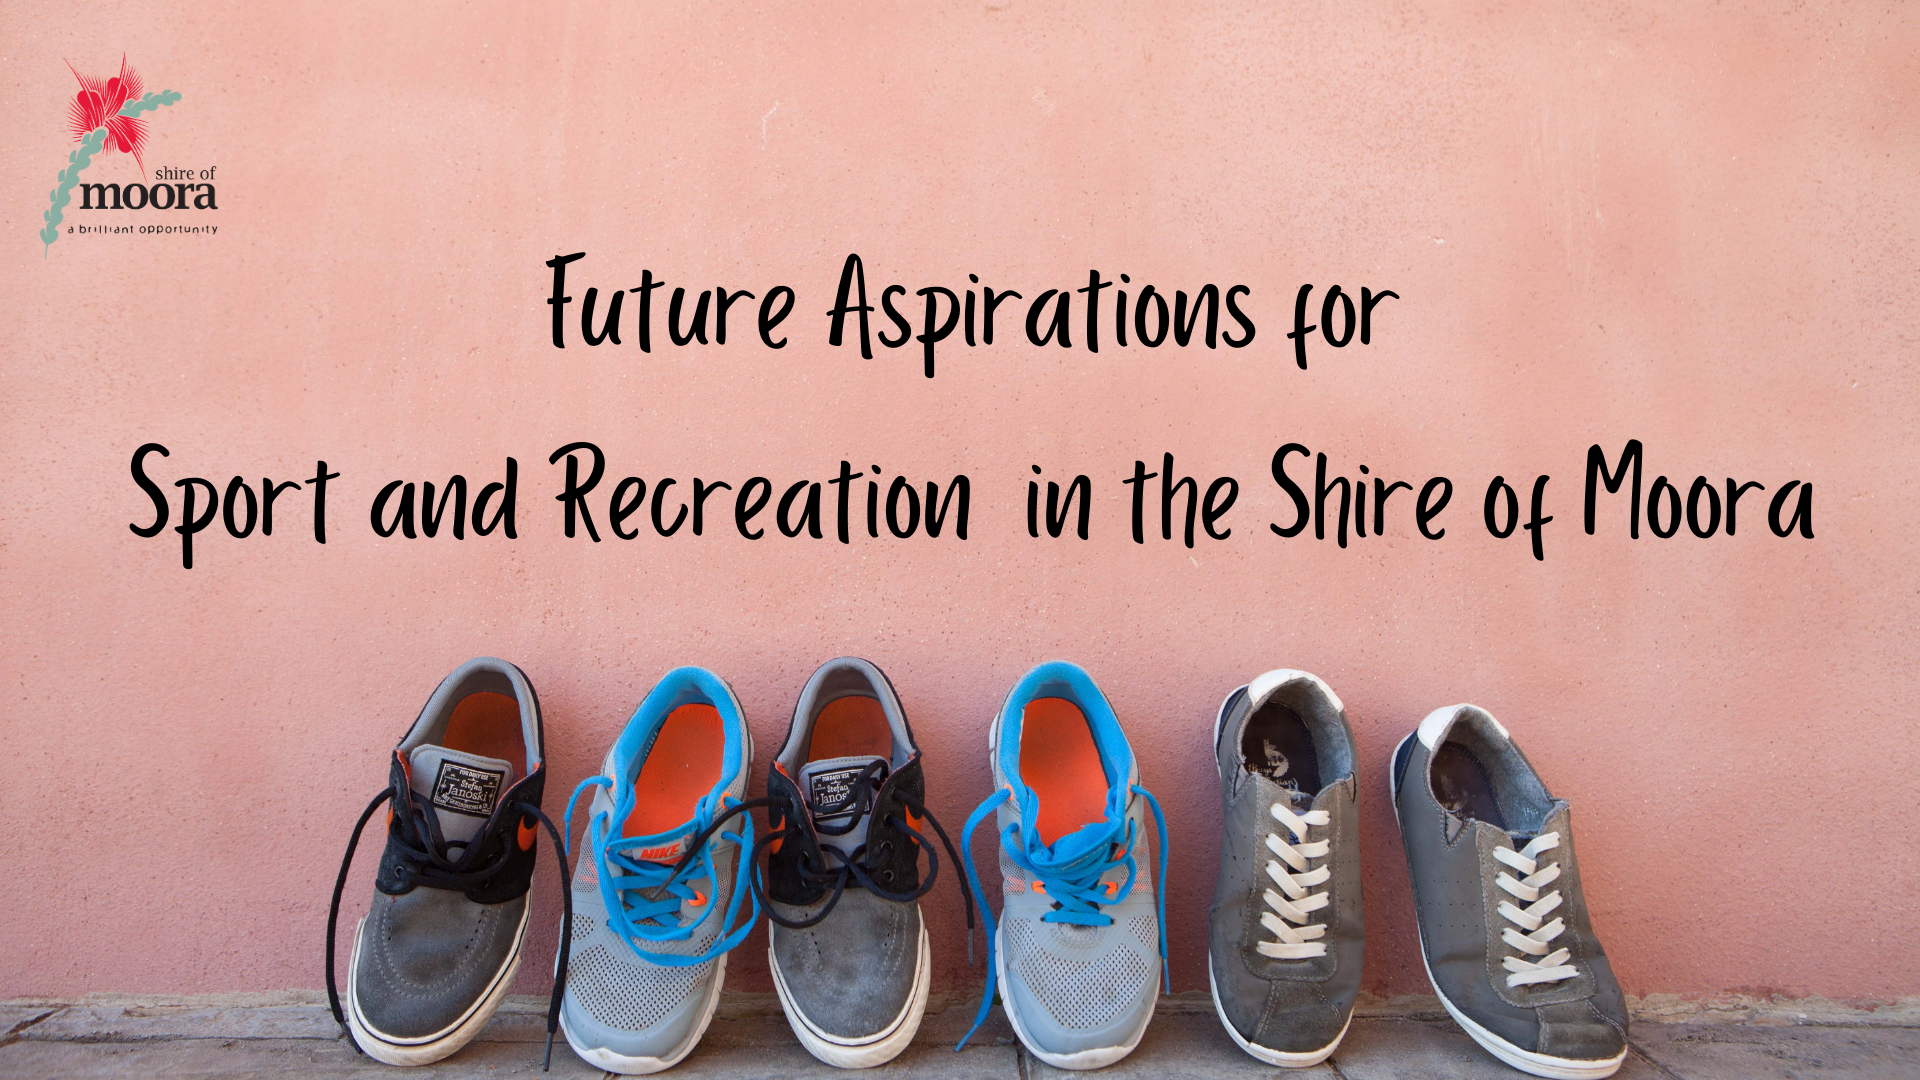 News Story: Future Aspirations for Sport and Recreation in the Shire of Moora